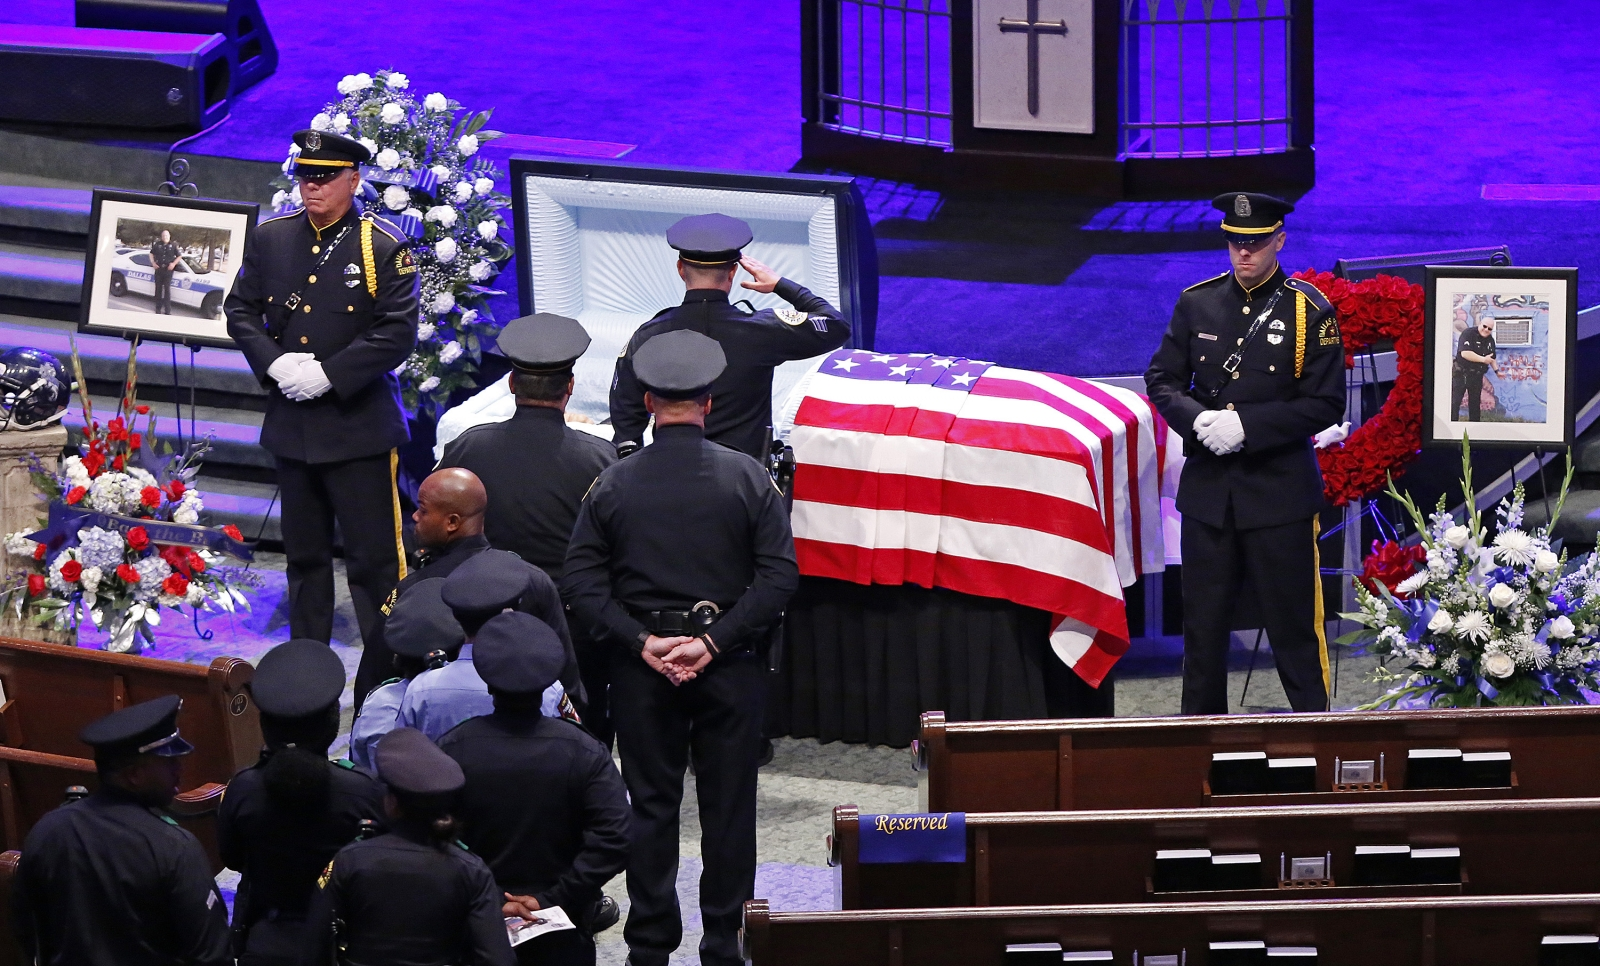 Dallas officer funeral